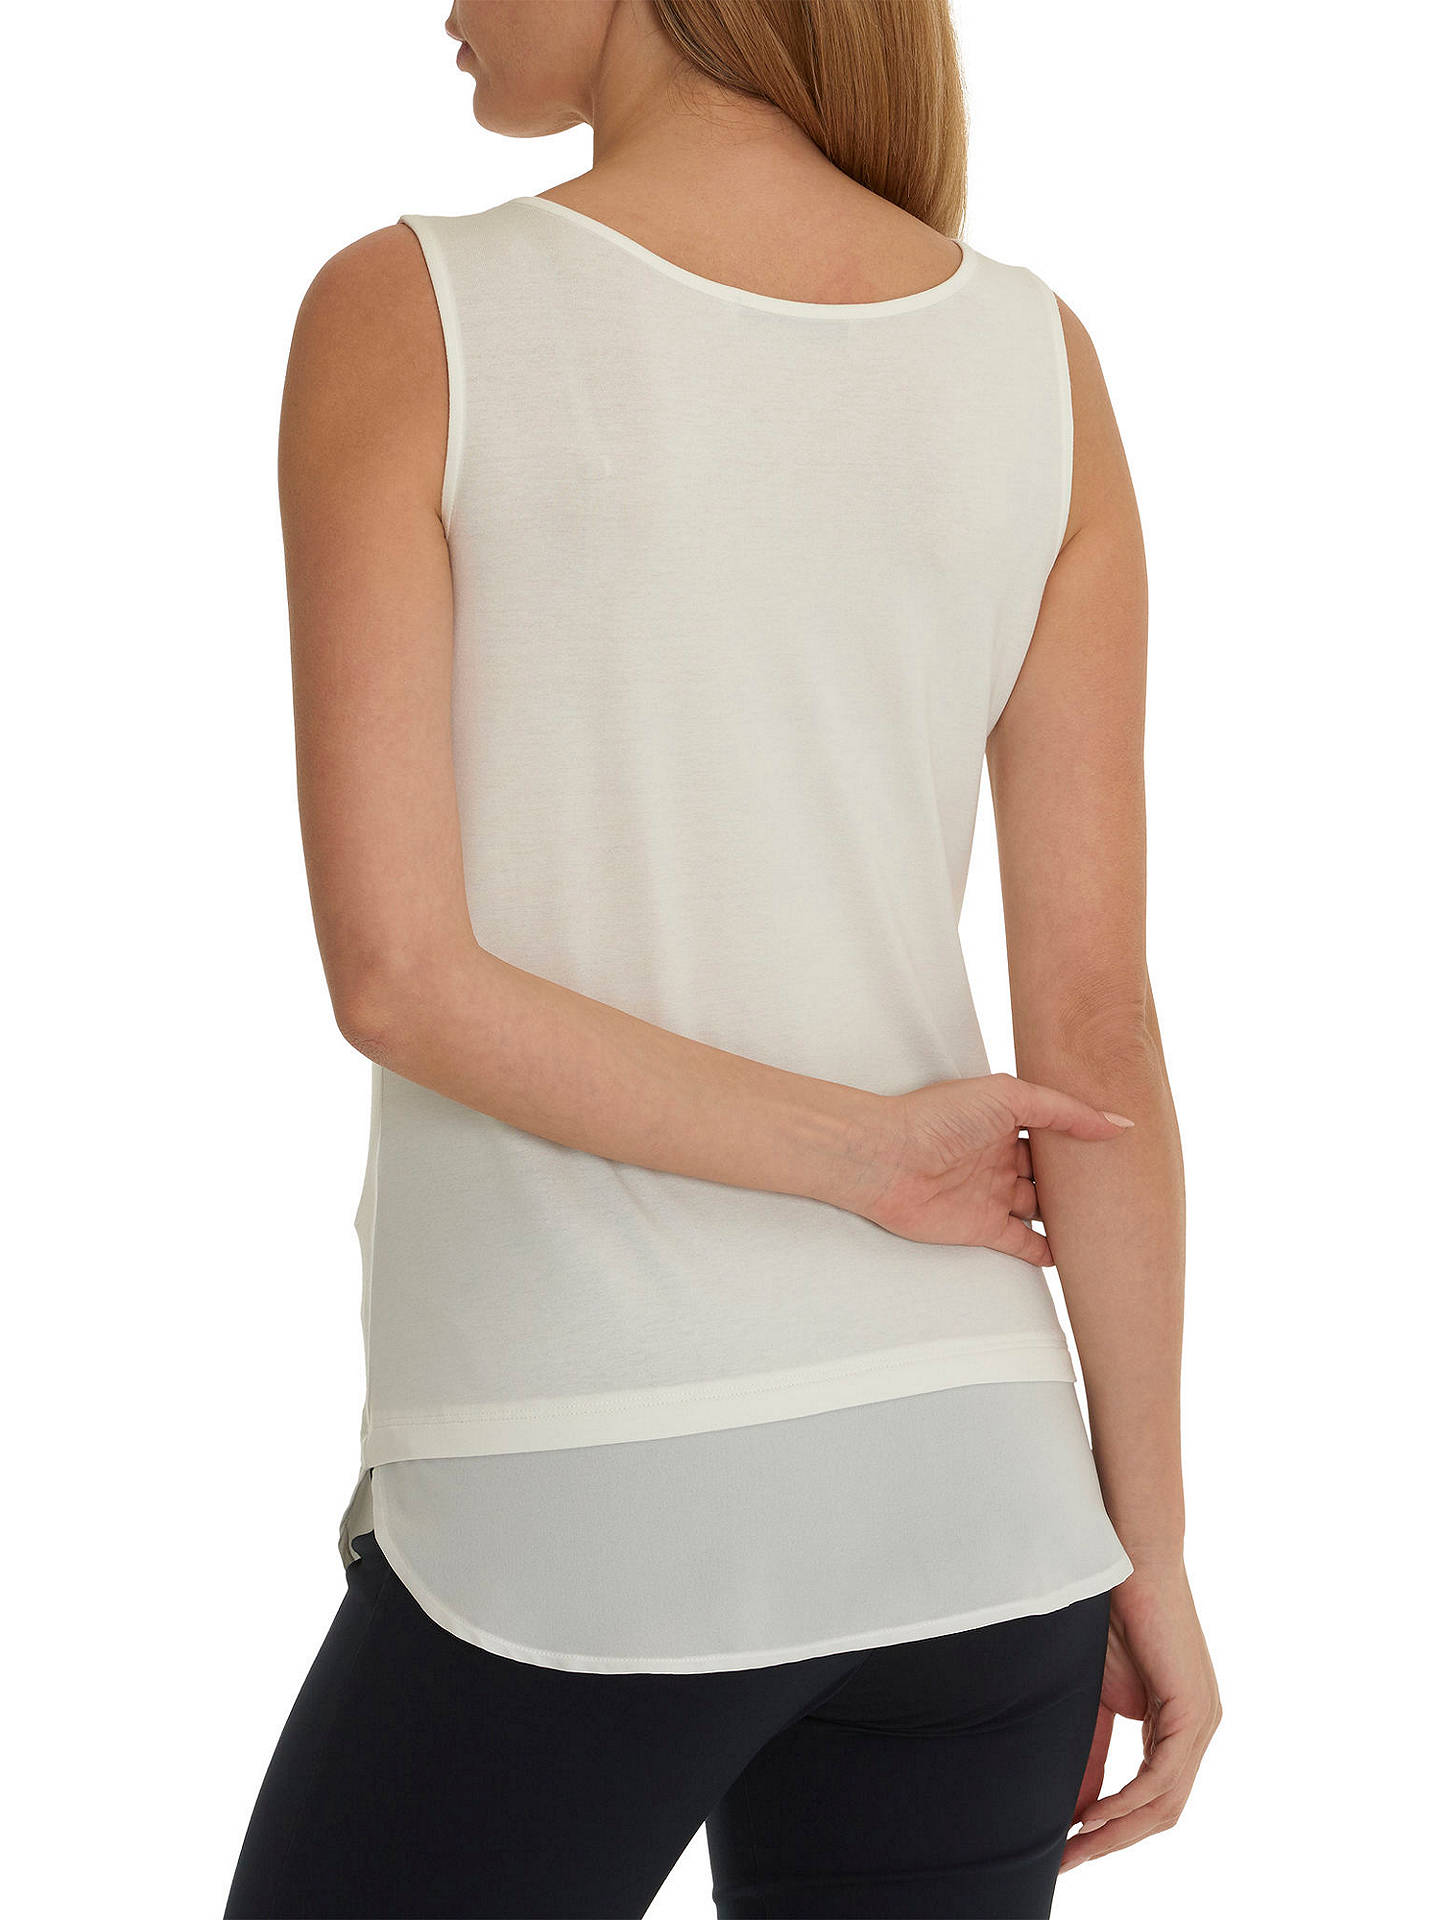 BuyBetty Barclay Layered Vest Top, Off White, 10 Online at johnlewis.com